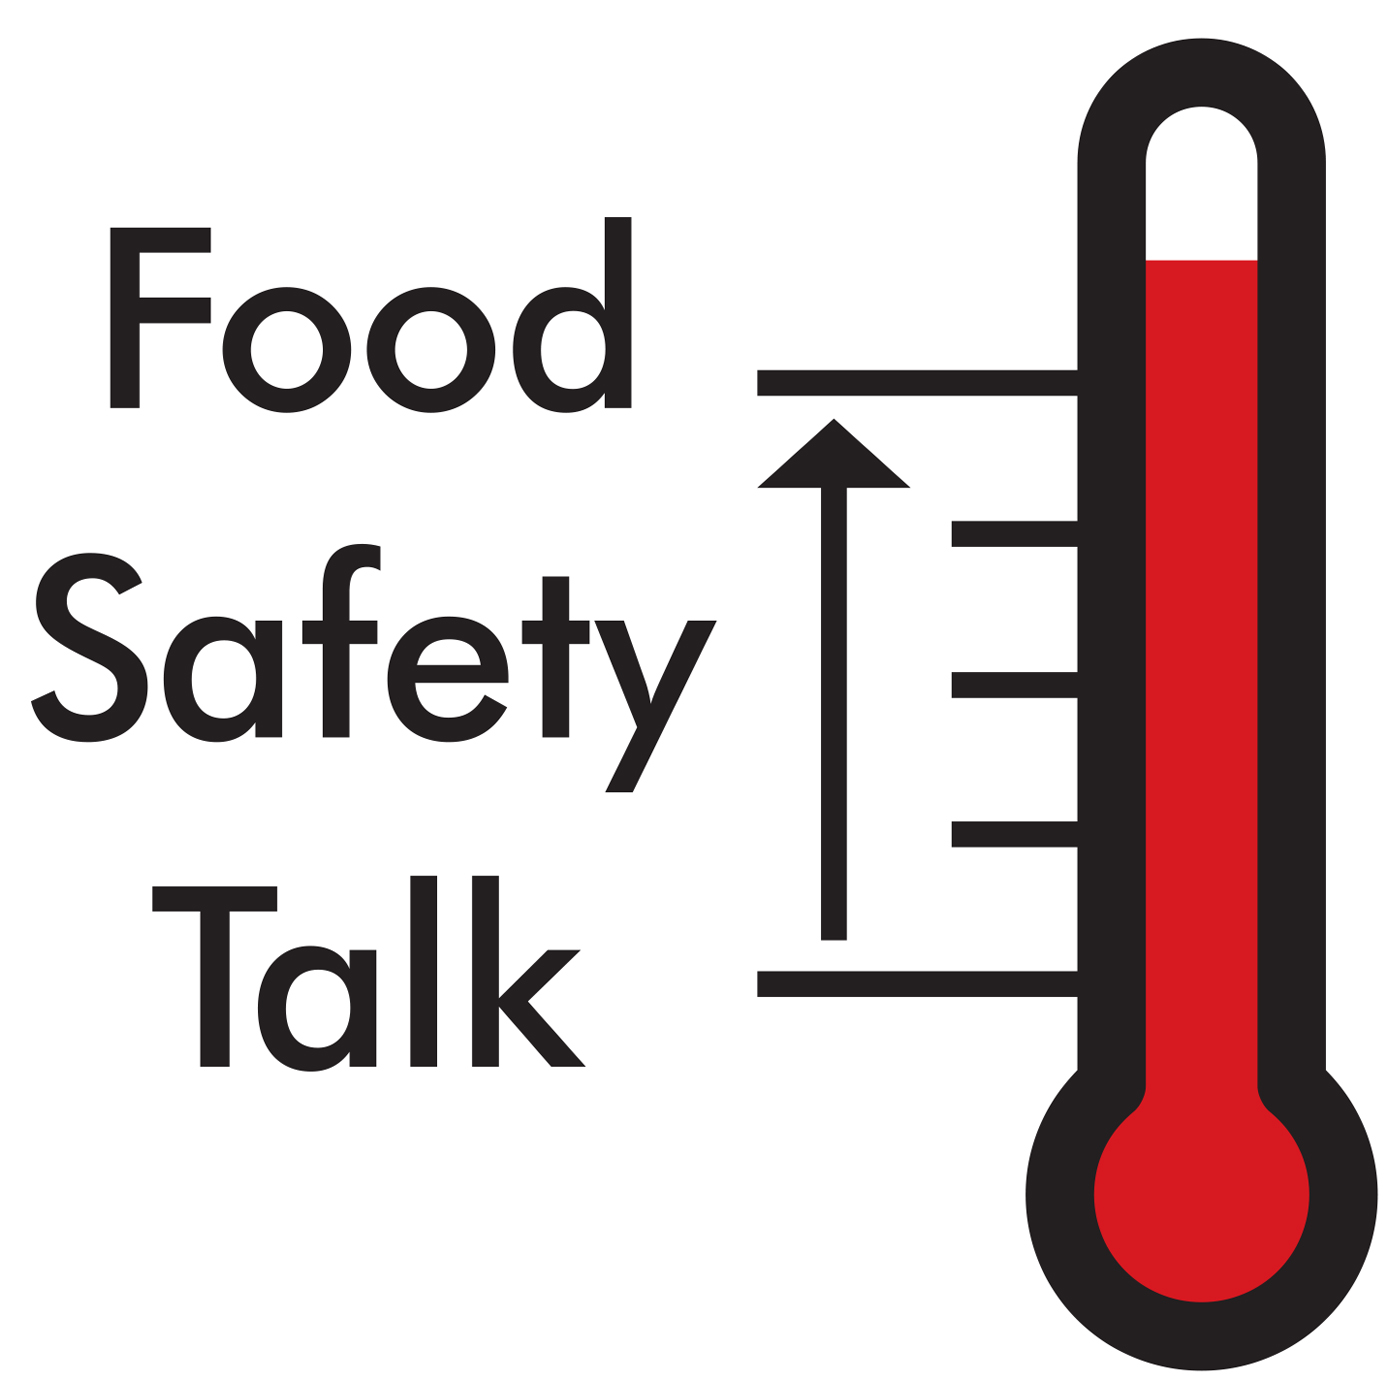 Food Safety Talk